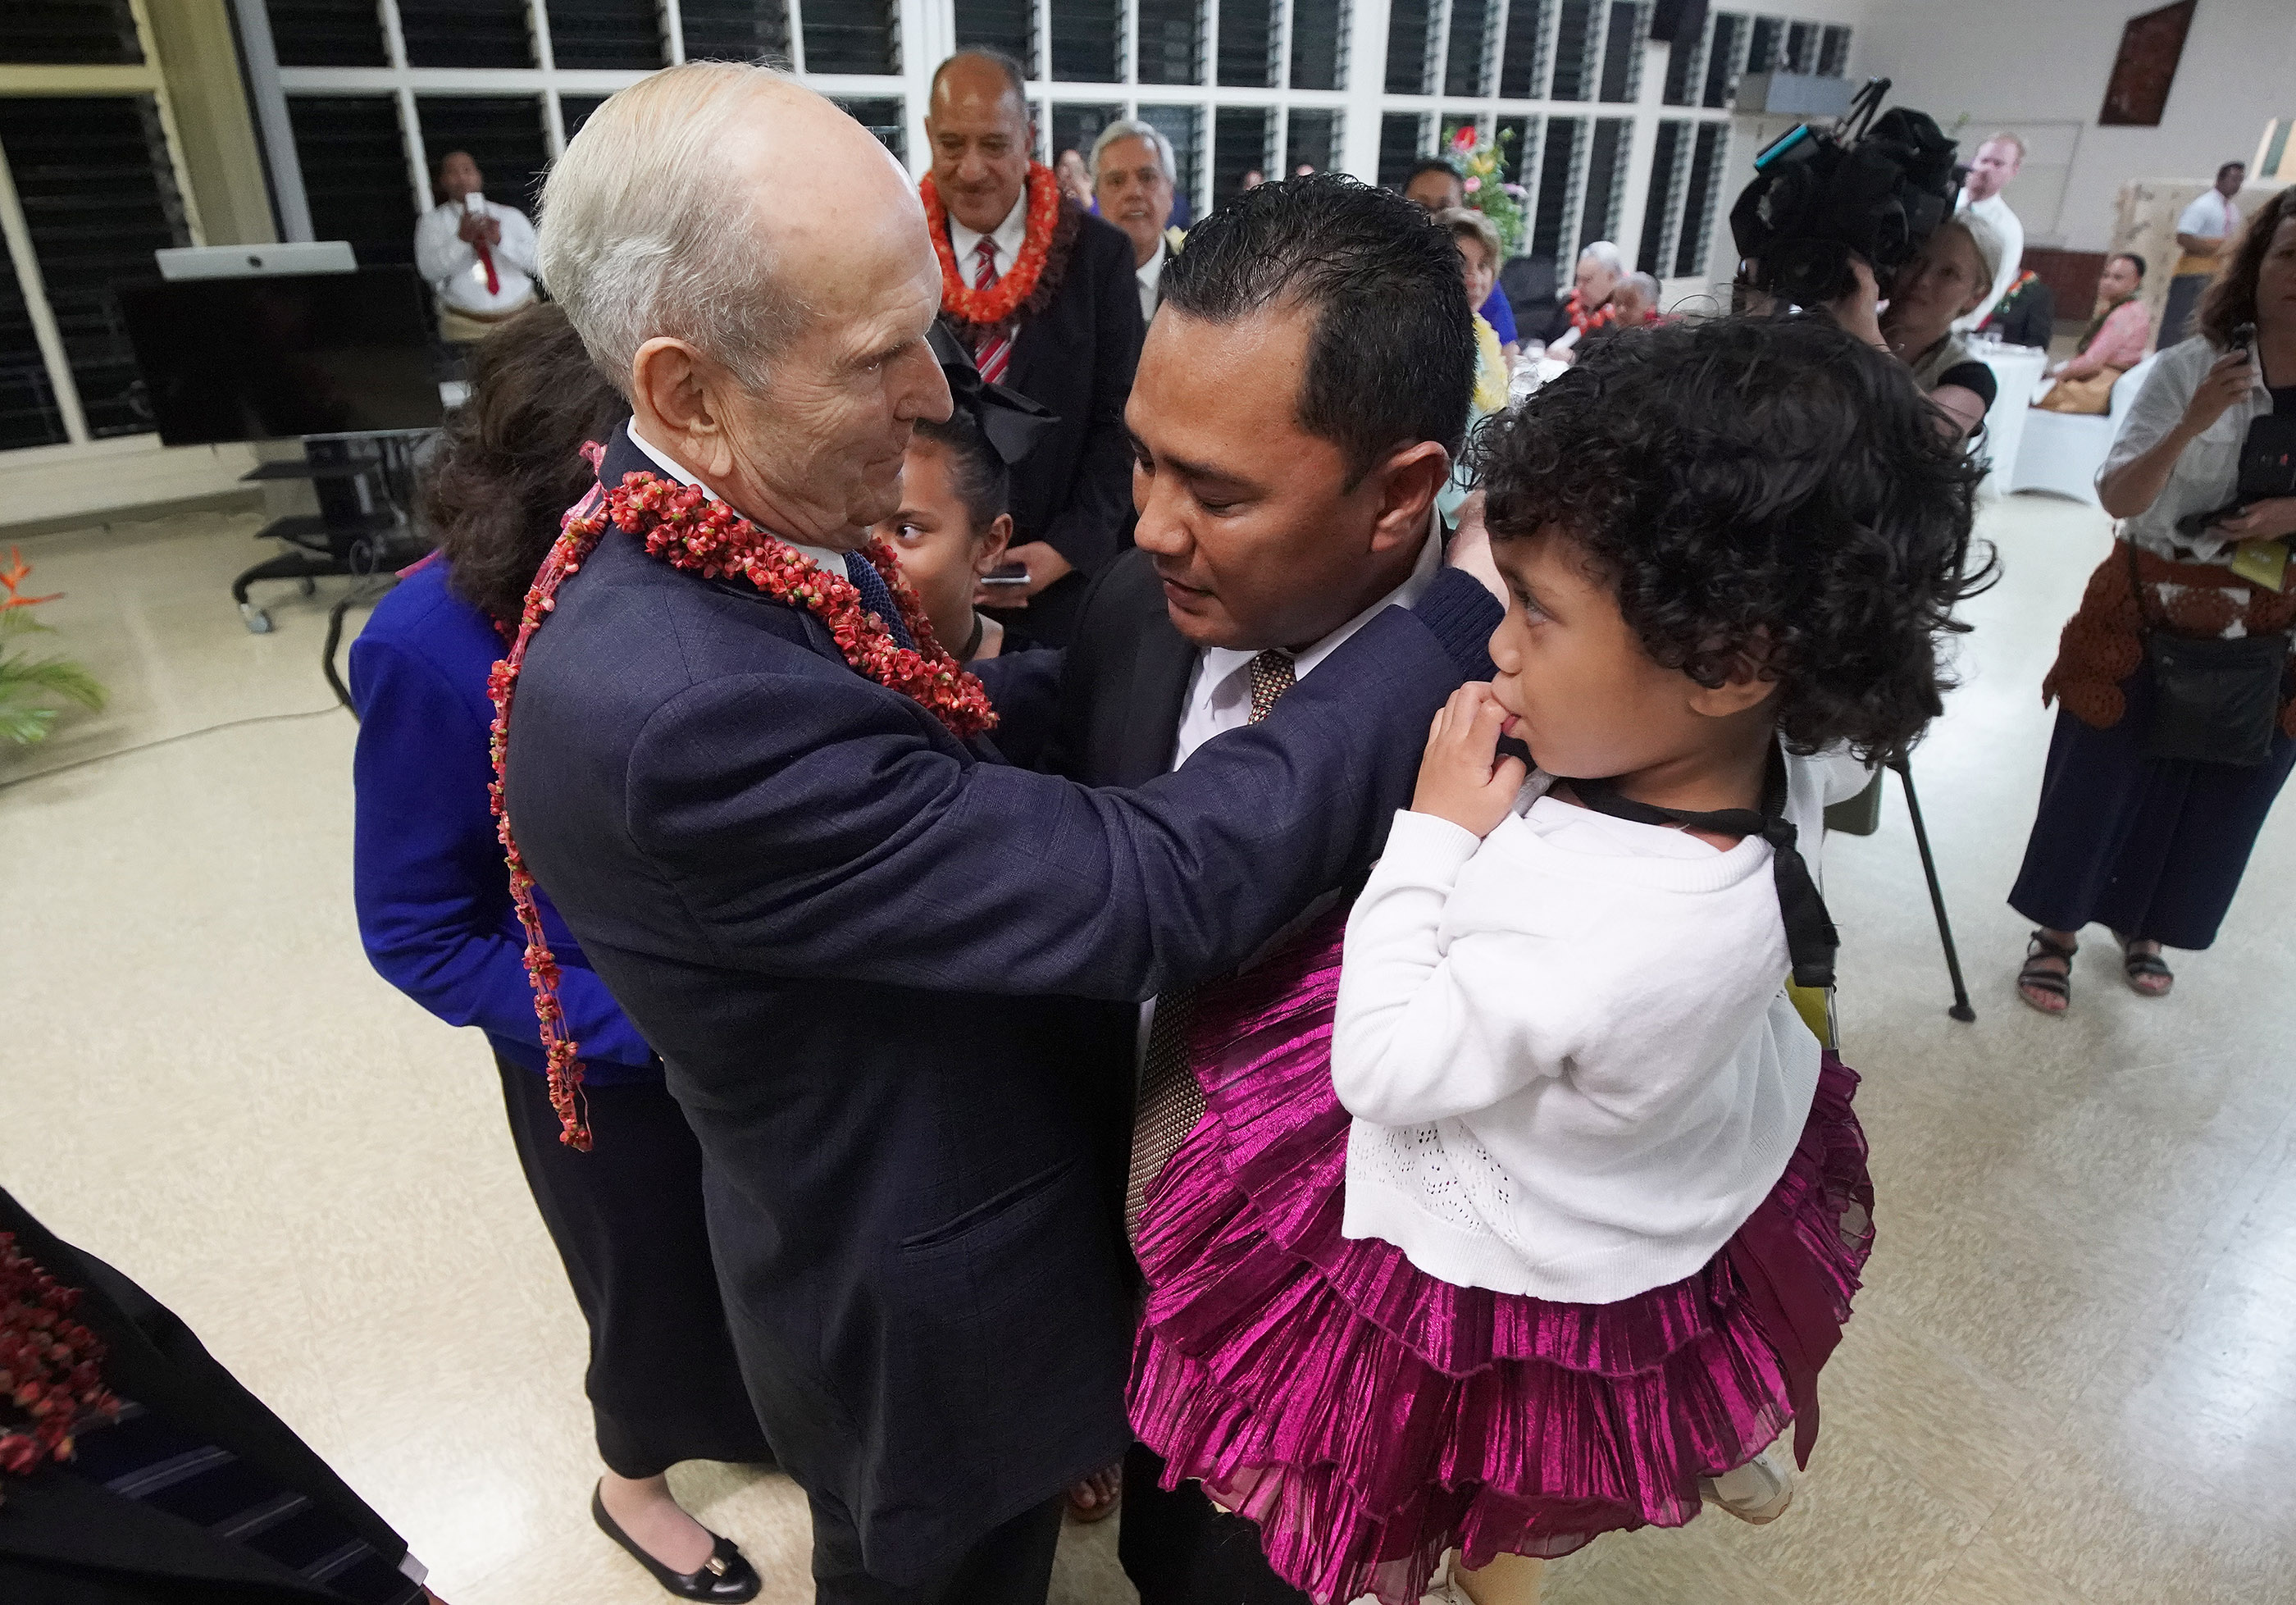 President Russell M. Nelson of The Church of Jesus Christ of Latter-day Saints comforts Mateo Lauta and his daughter Sipinga in Nuku'alofa, Tonga, on May 23, 2019 after his wife passed away.